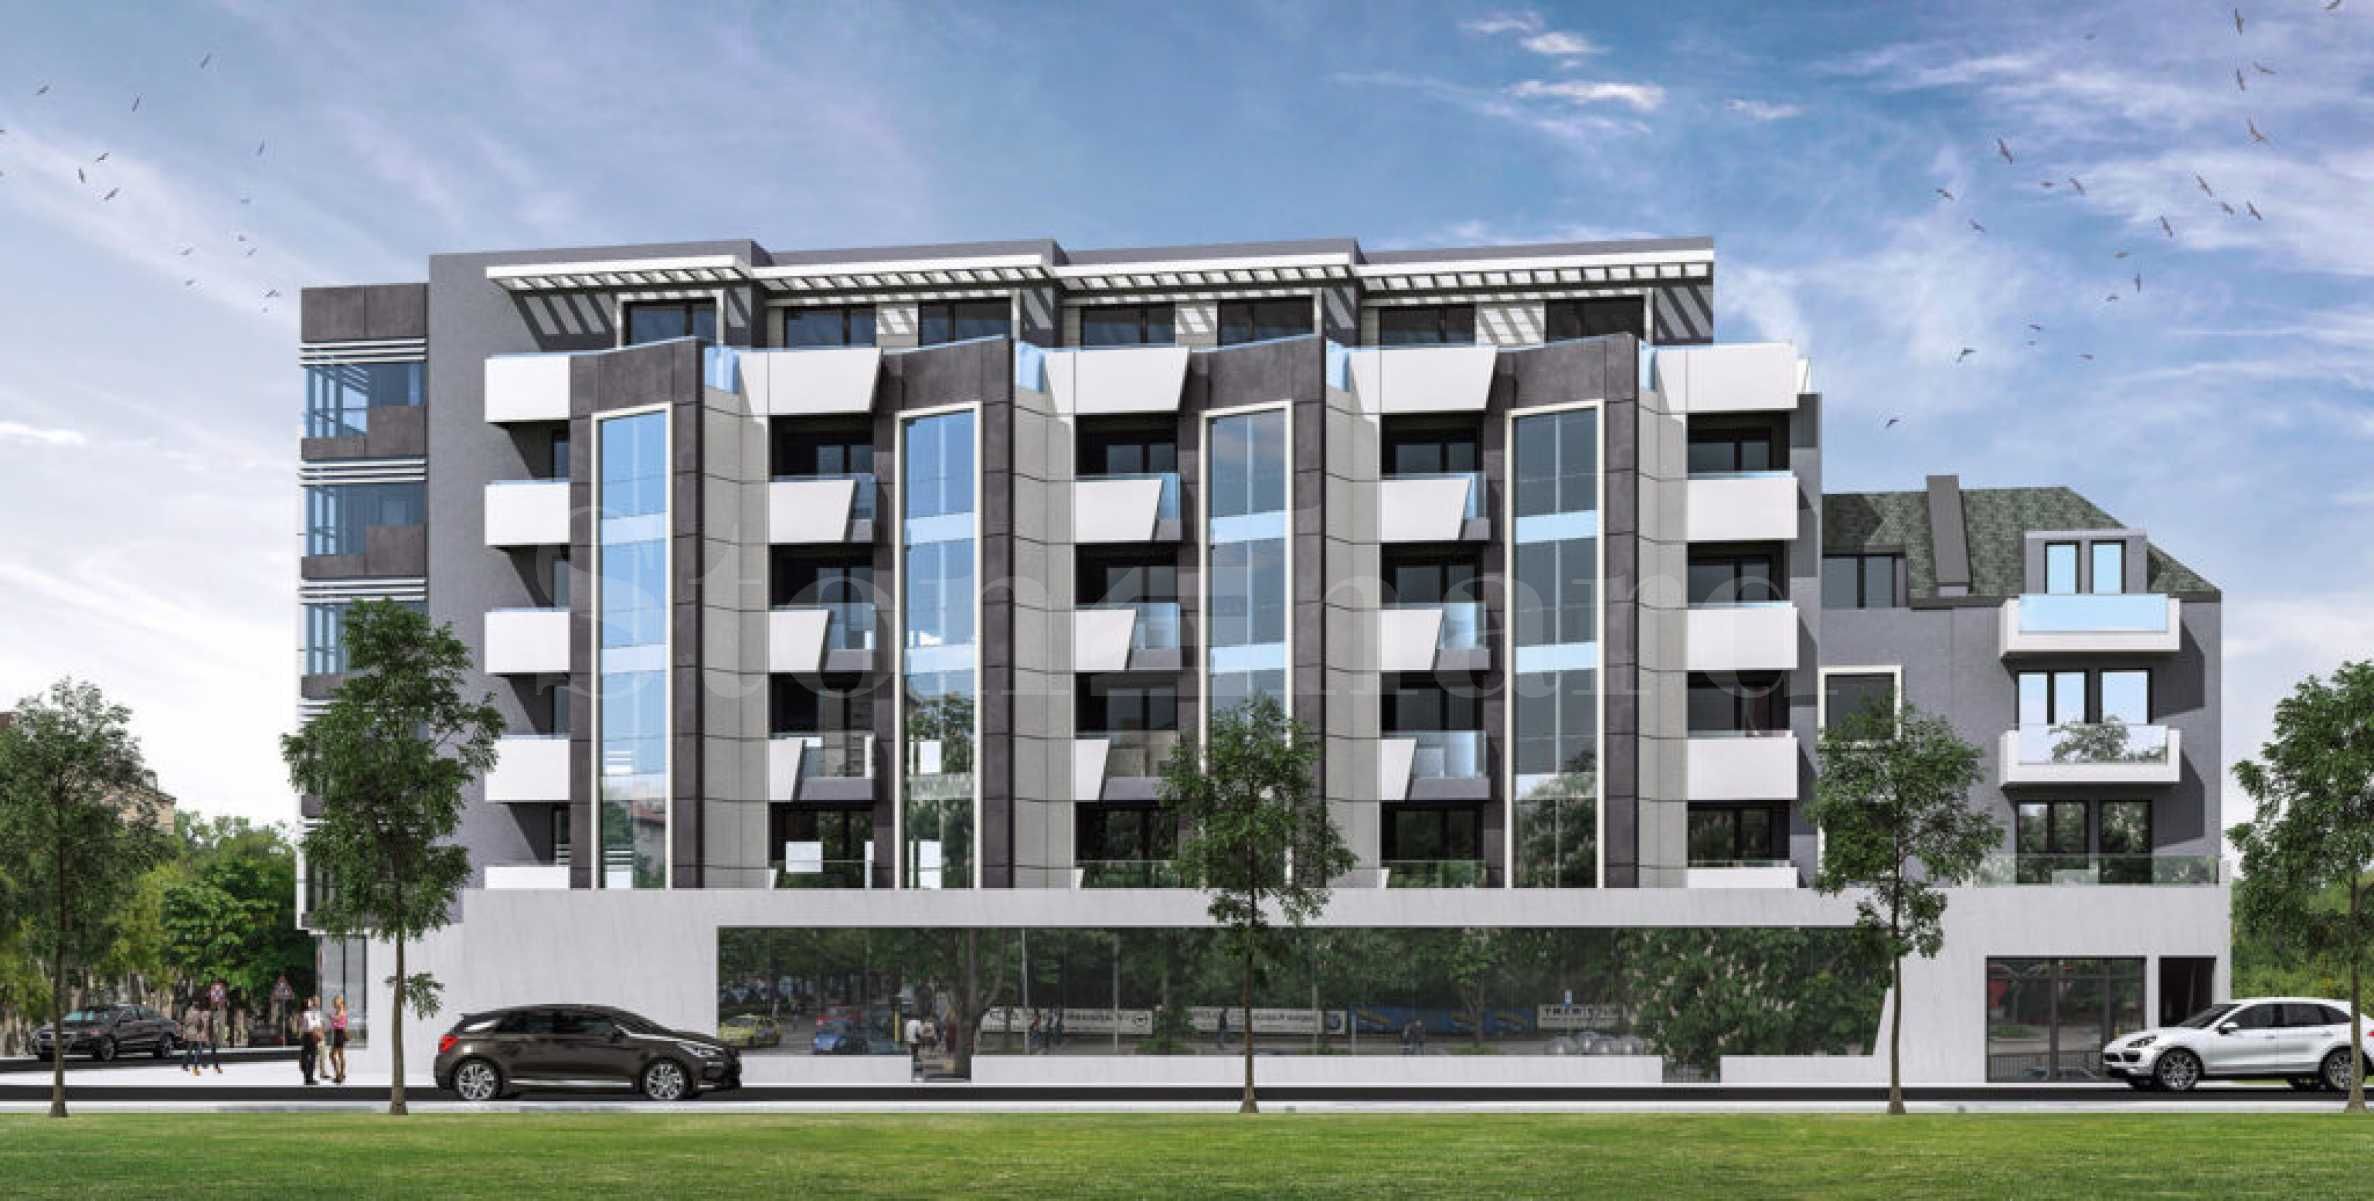 Apartments and parking spaces in a new, elite building with a modern vision in the center1 - Stonehard